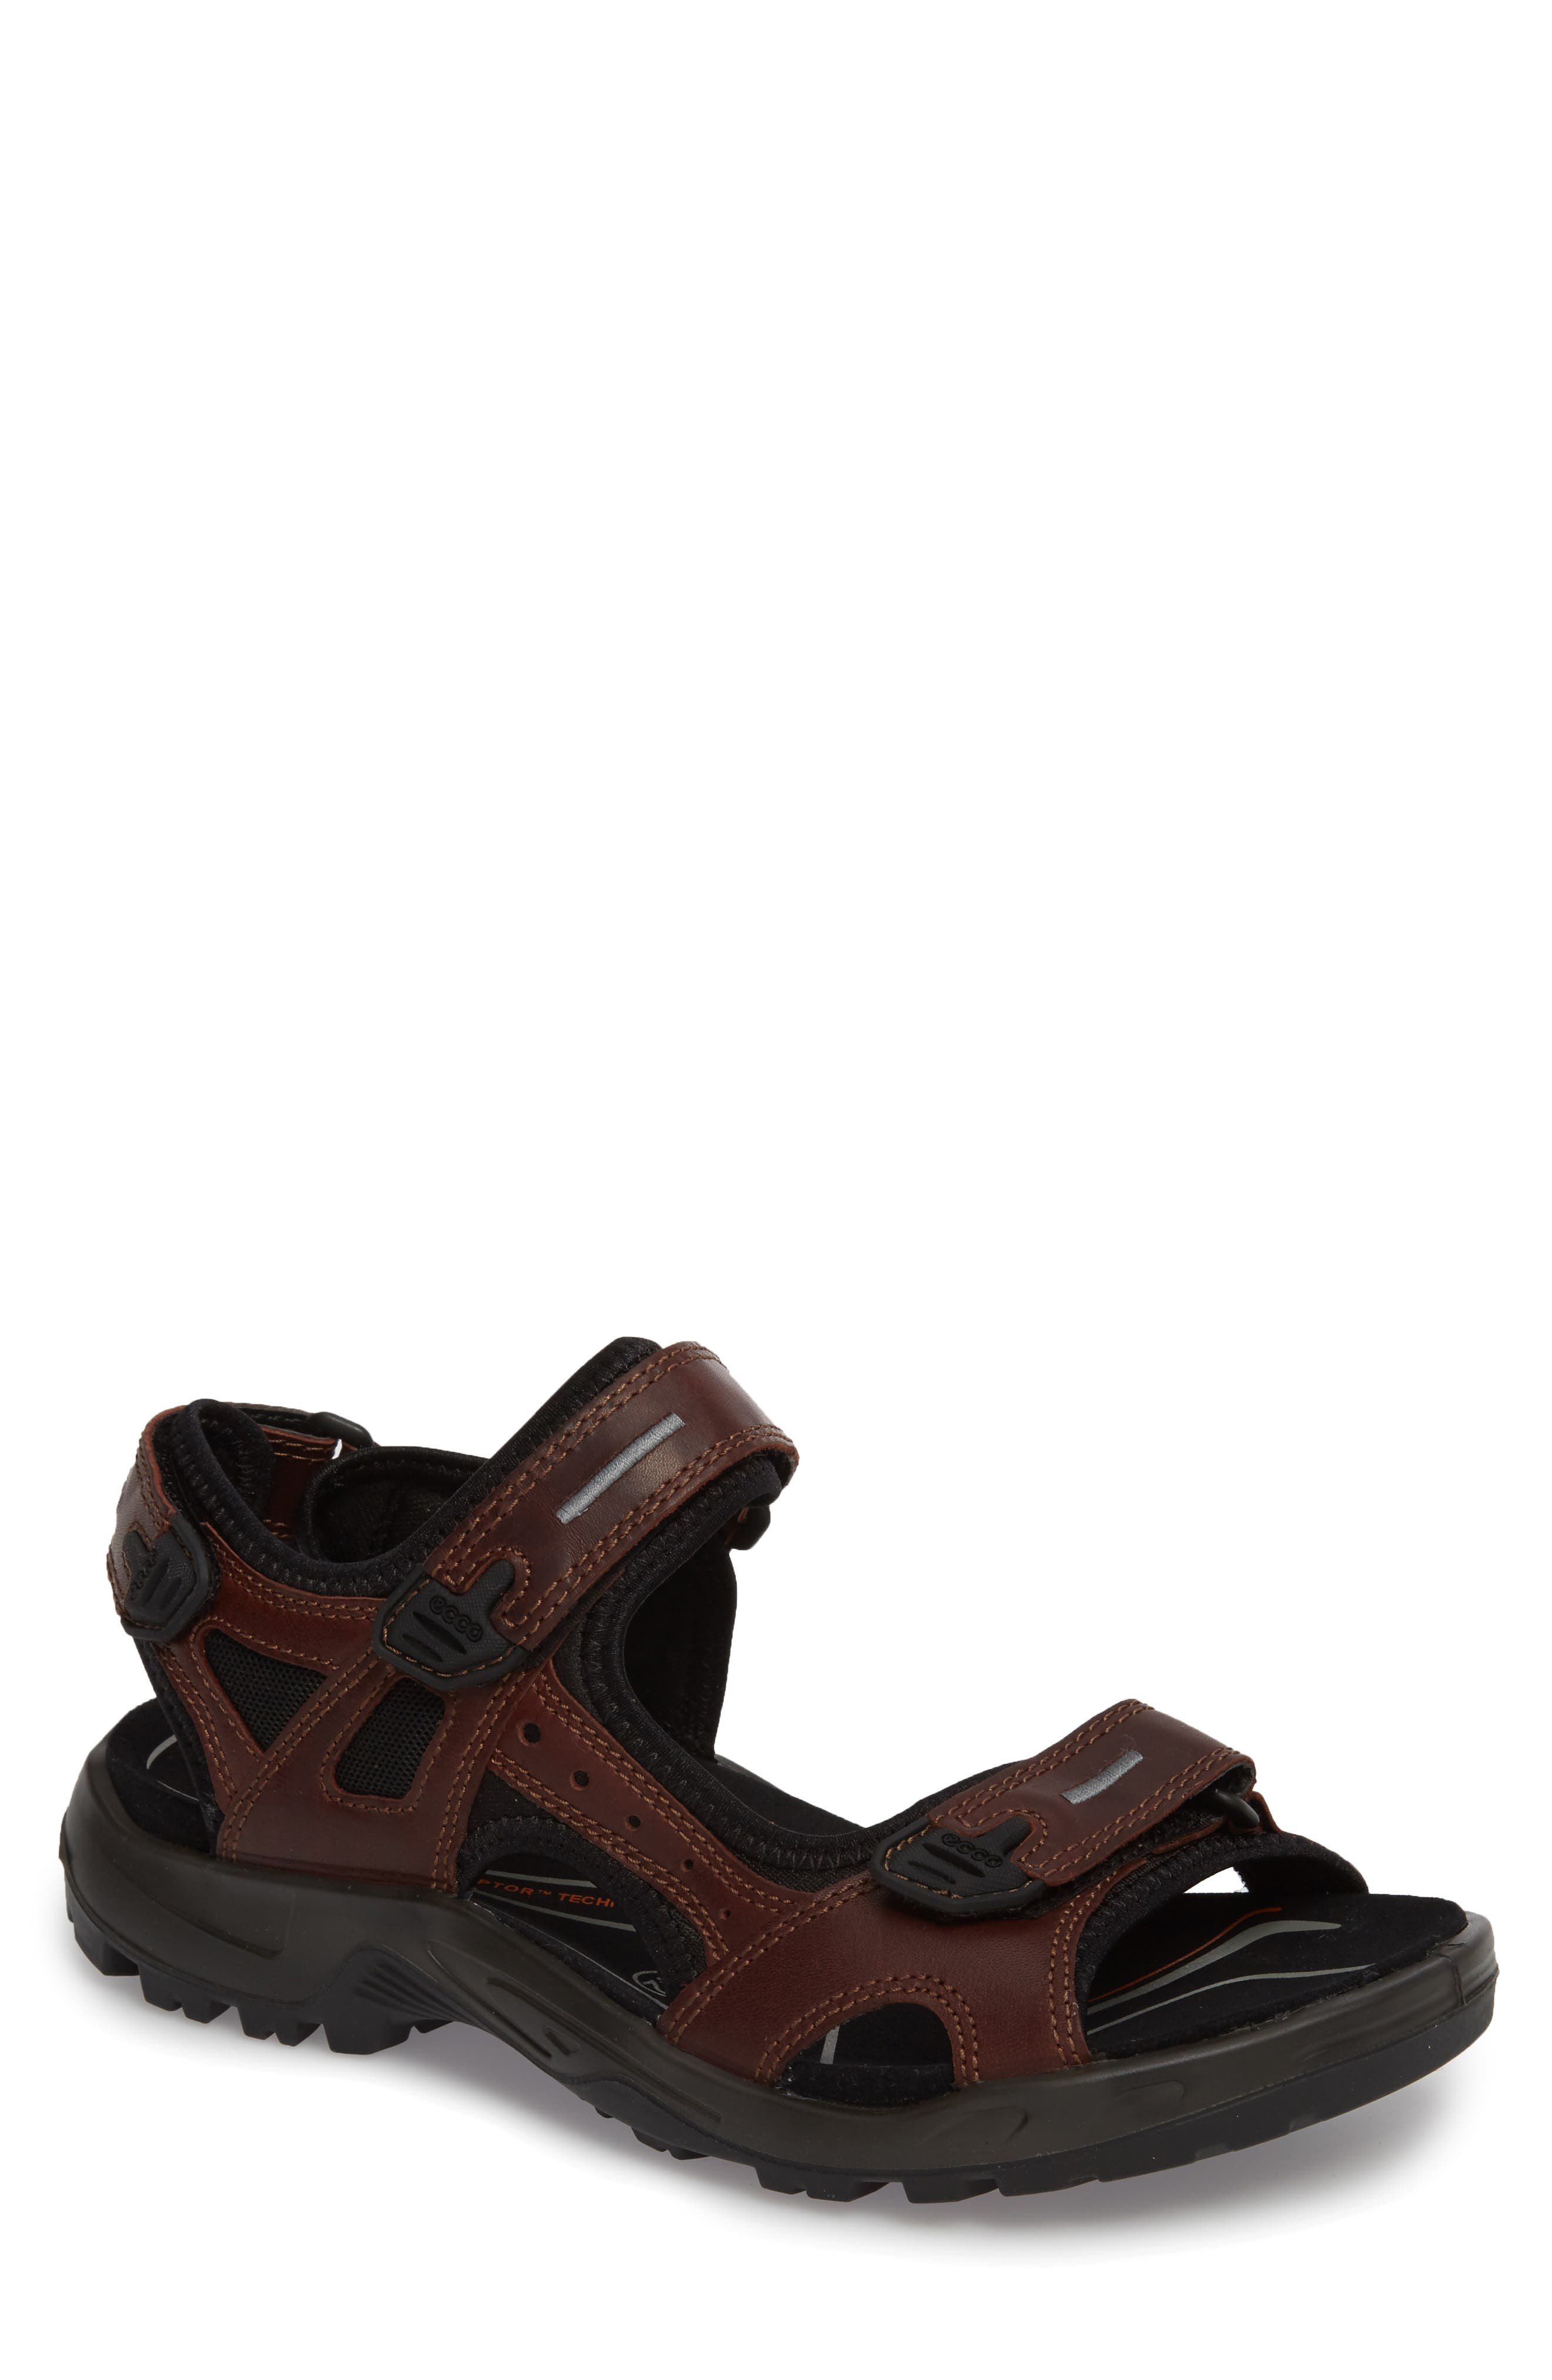 Offroad Sport Sandal,                         Main,                         color, Brandy Leather